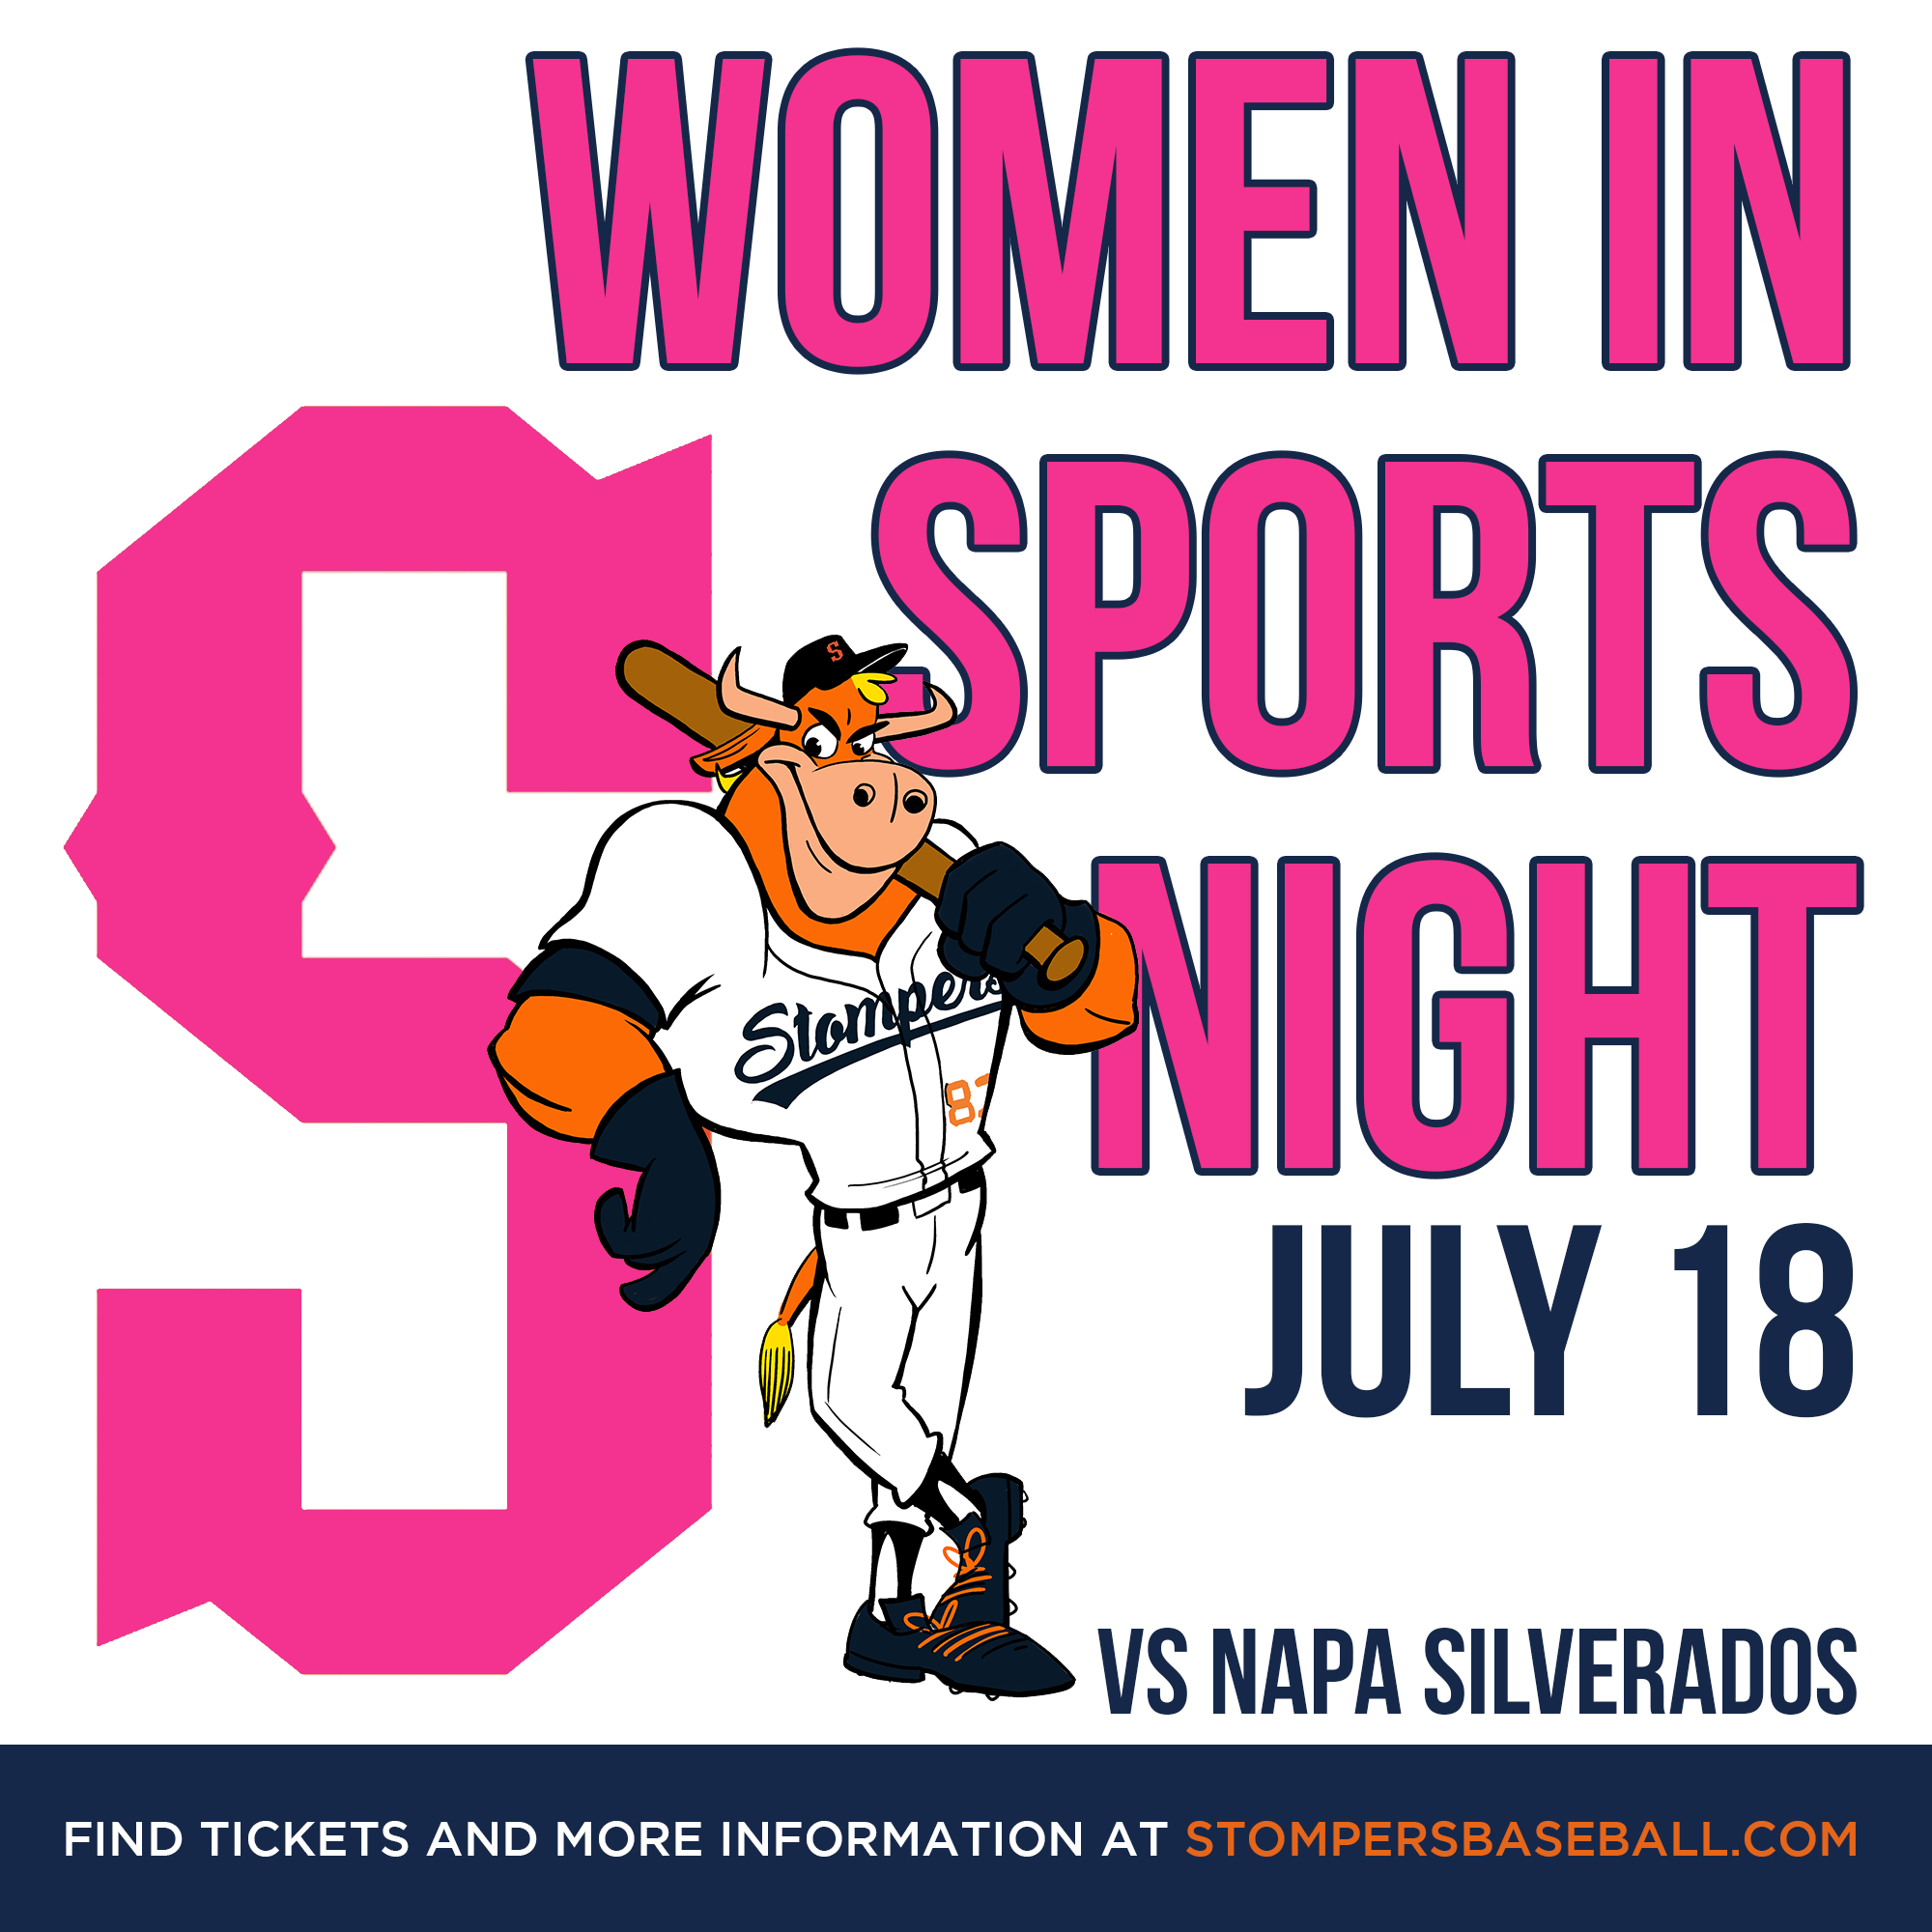 July 18: Women in Sports Night - Come out to the Palooza Park at Arnold Field for Women in Sports Night